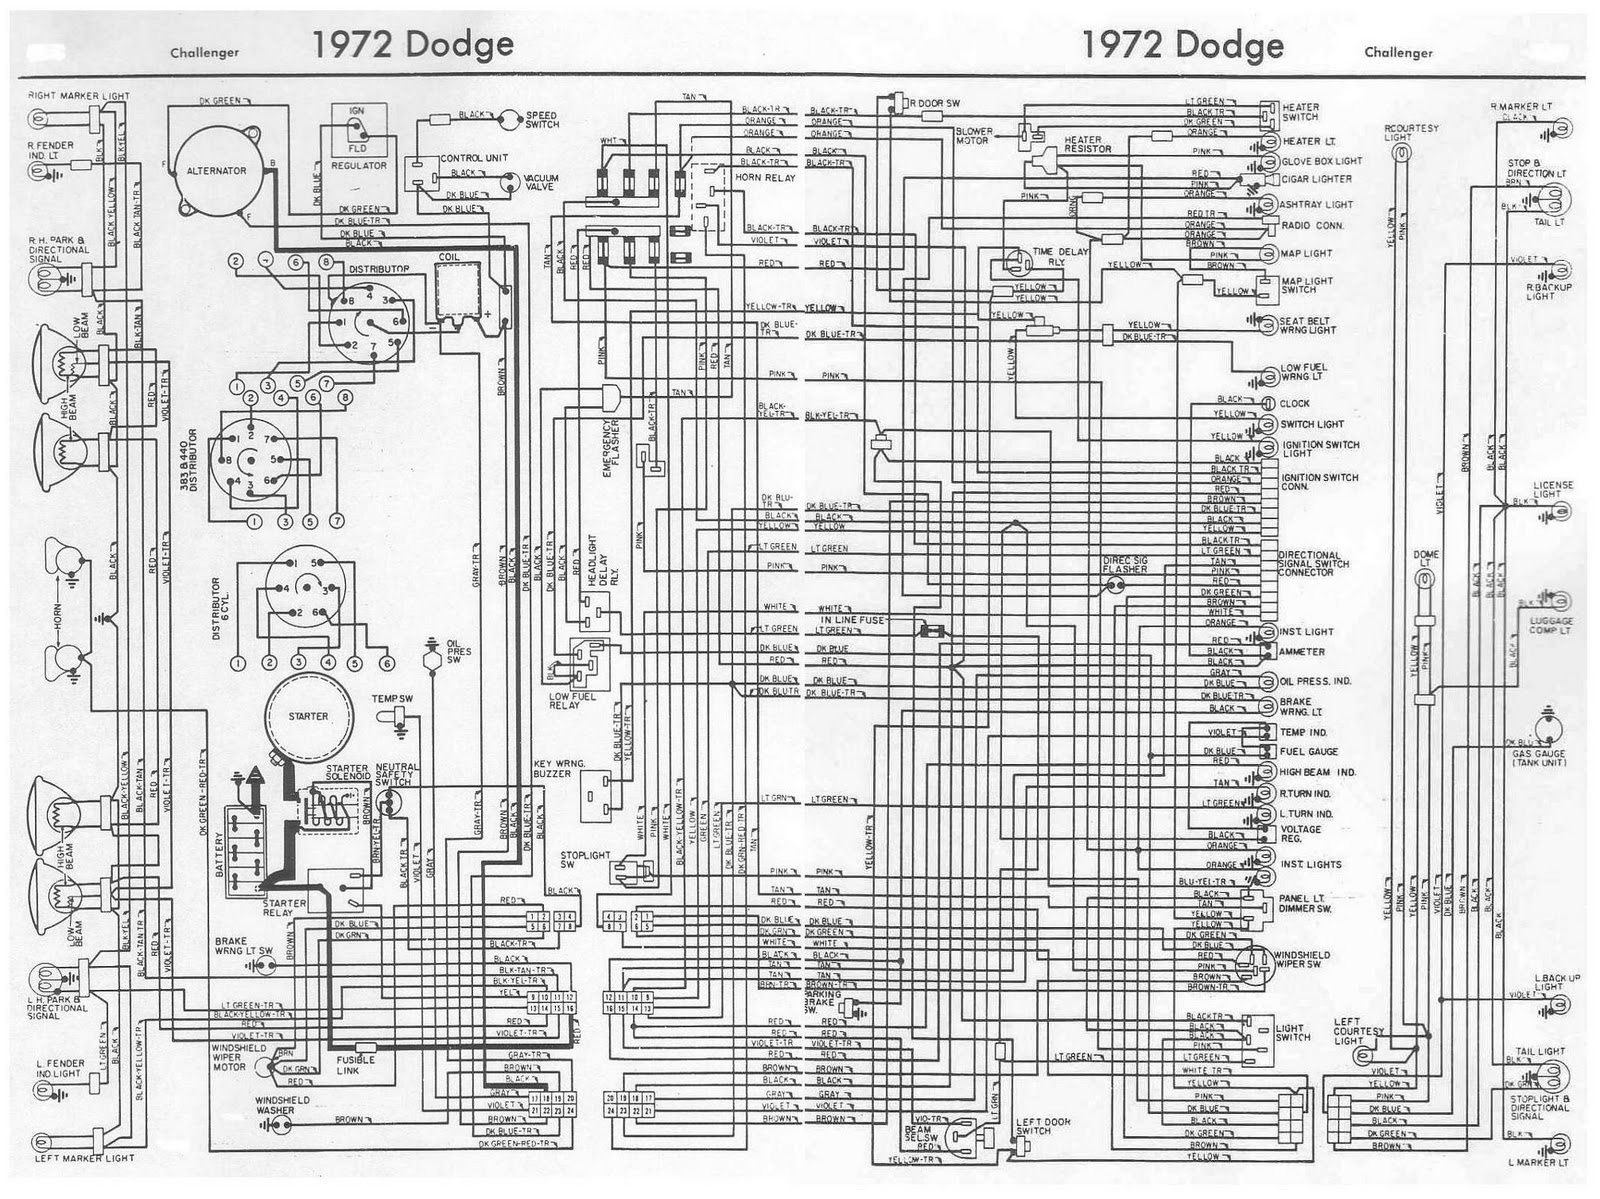 1966 charger wiring diagram wiring diagram table 1966 Pontiac Bonneville Wiring Diagram